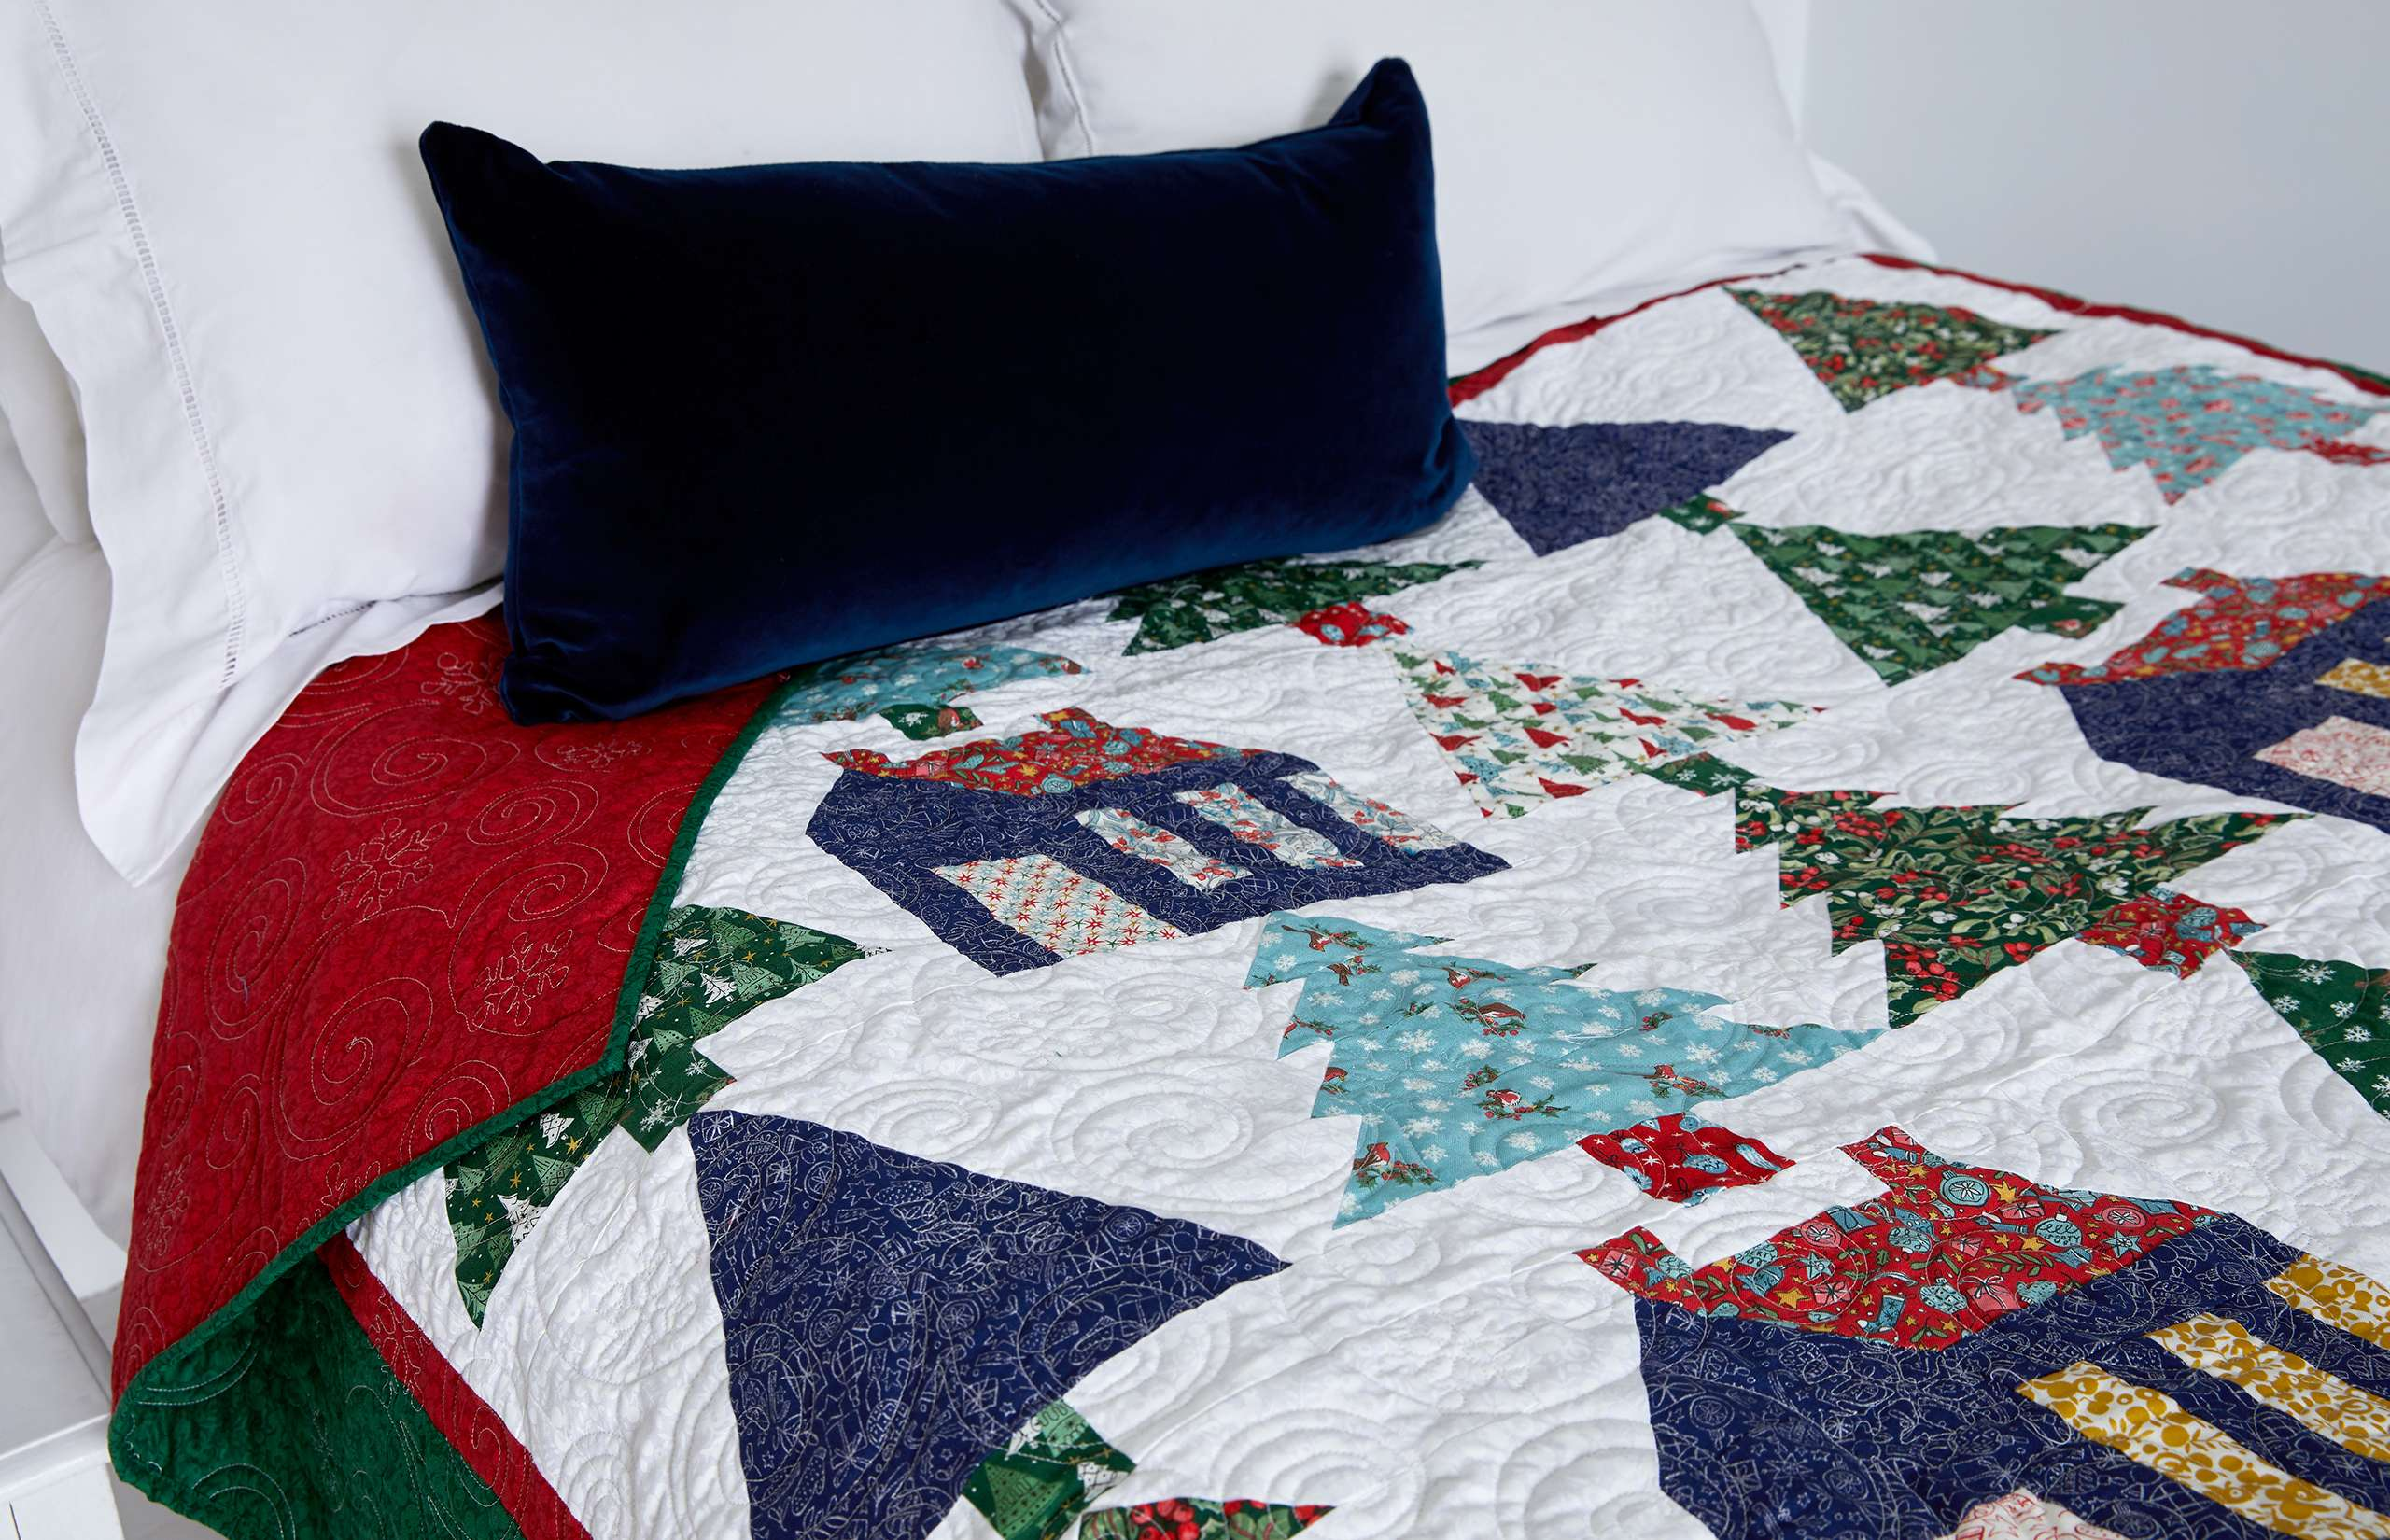 The 2020 Festive Quilt Project